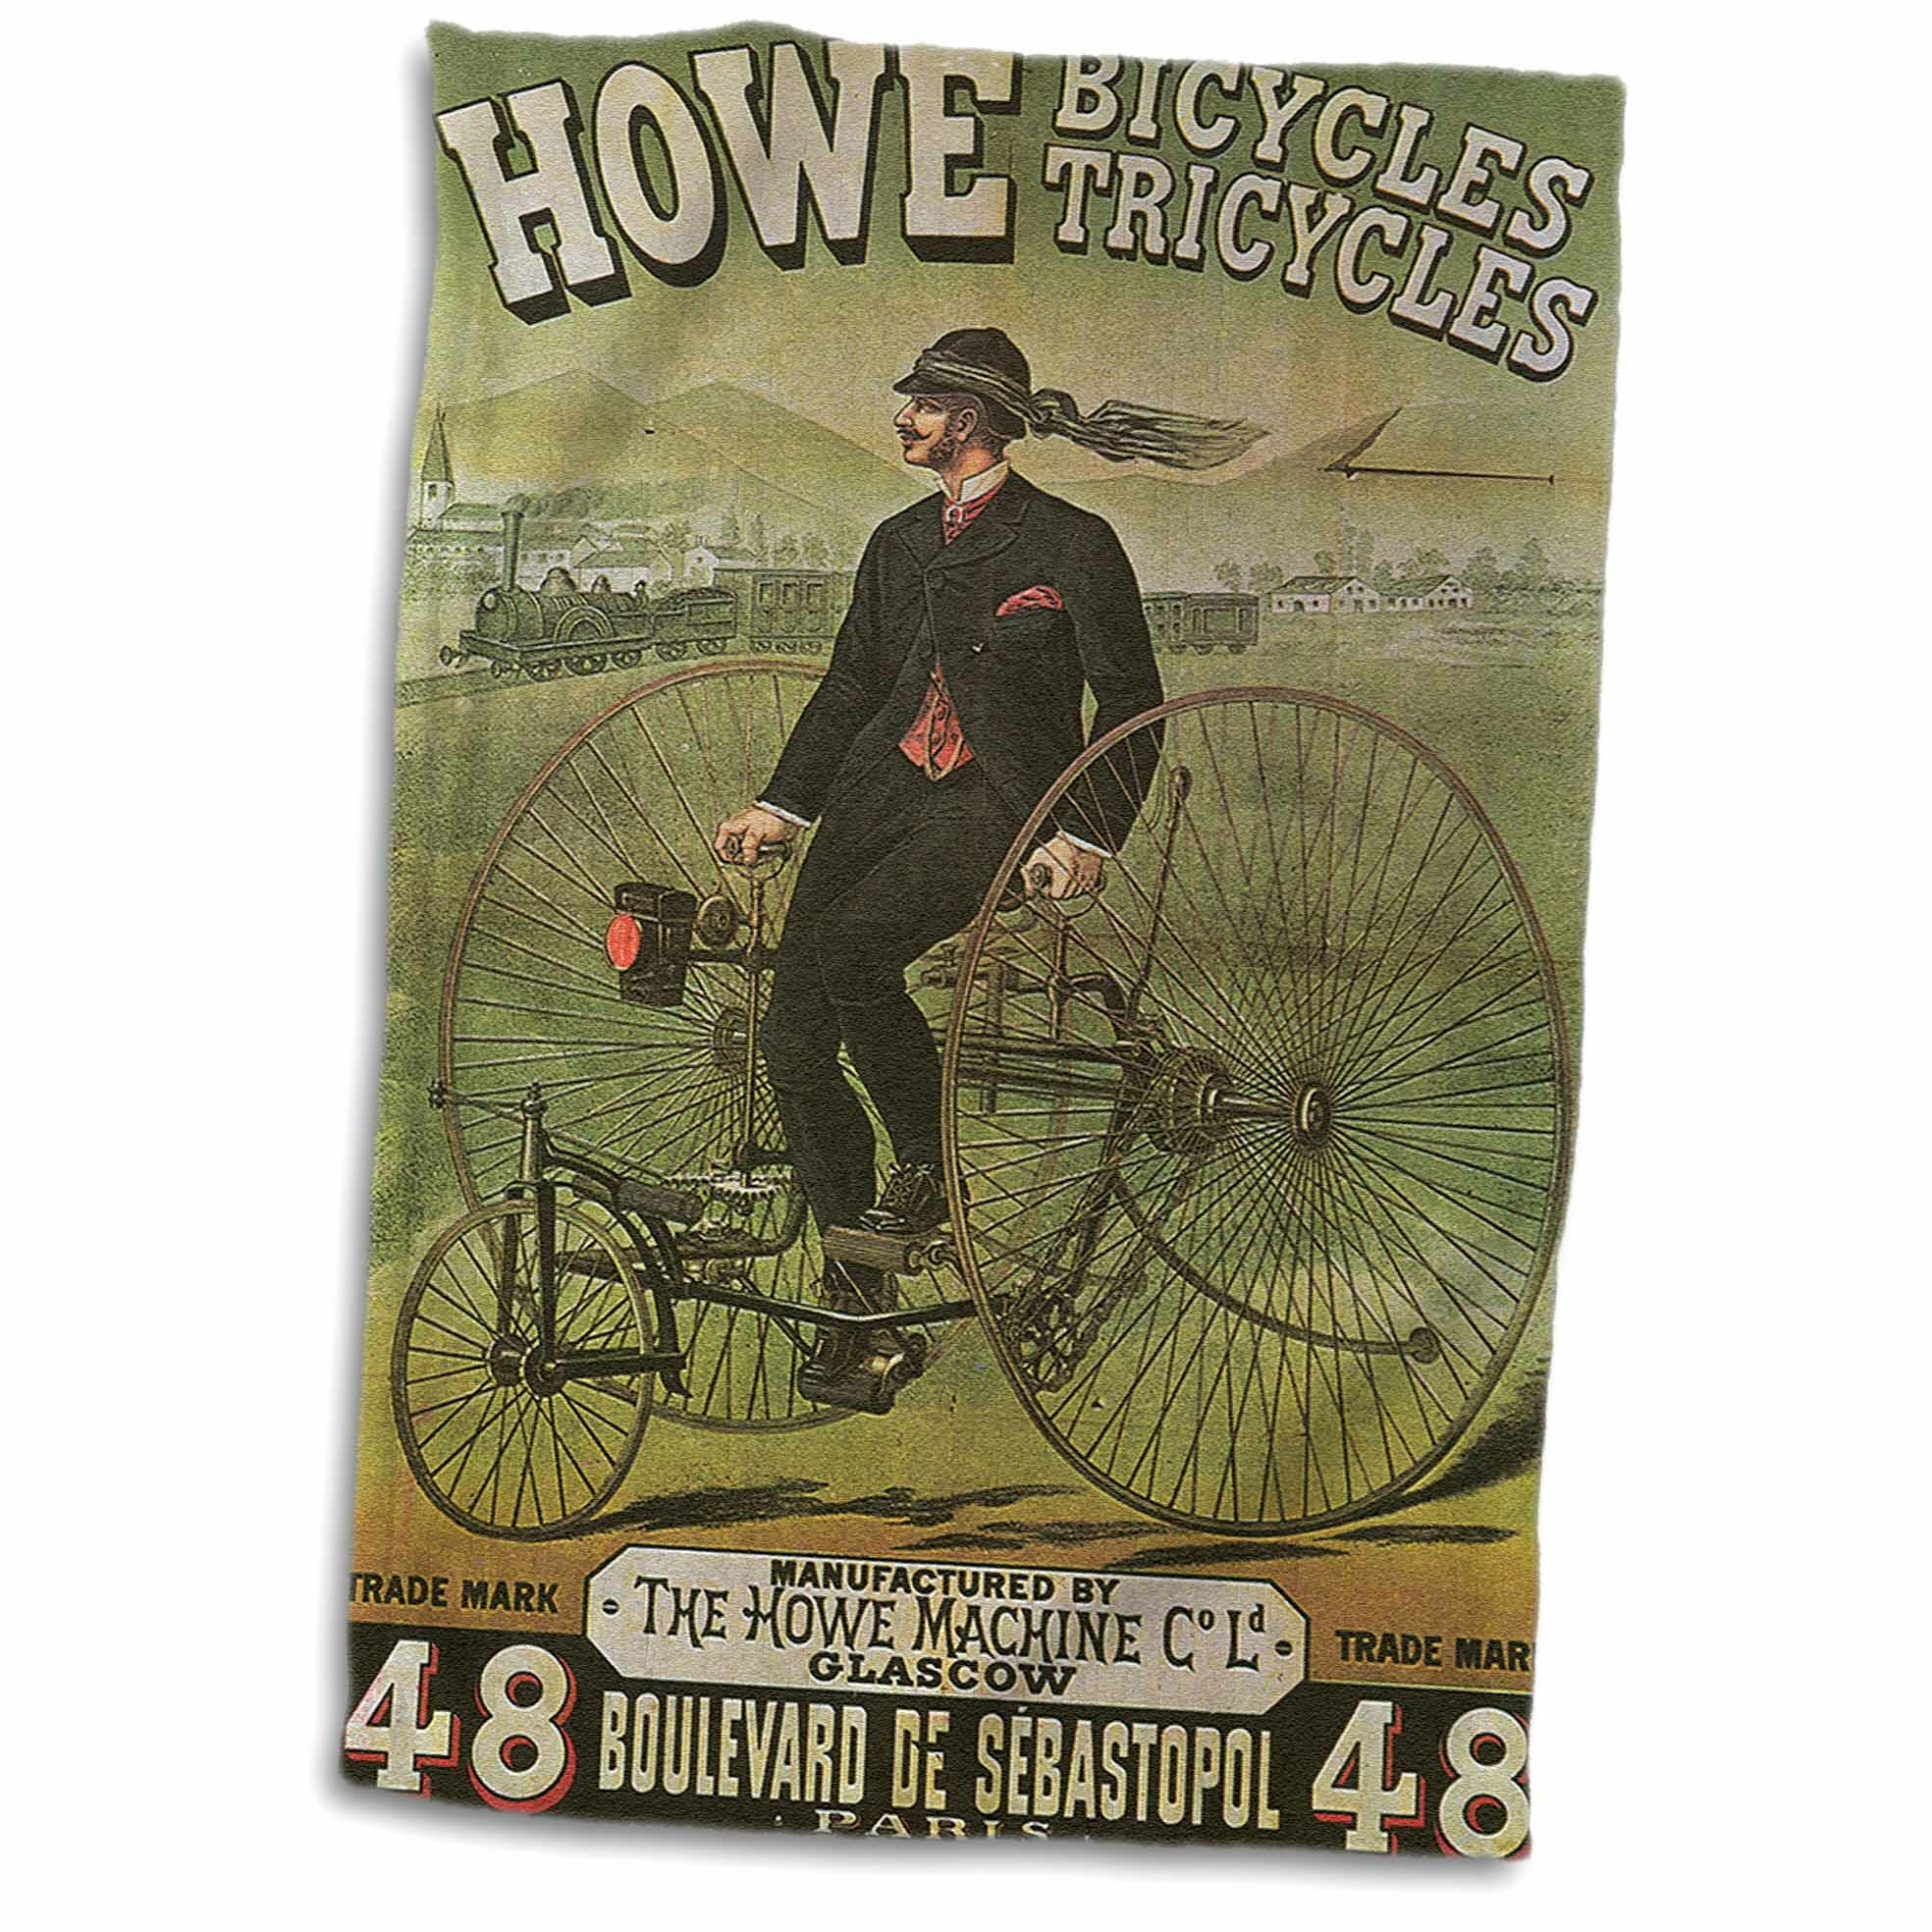 Symple Stuff Harvell Howe Bicycles Tricycles Glascow Advertising Poster Hand Towel Wayfair